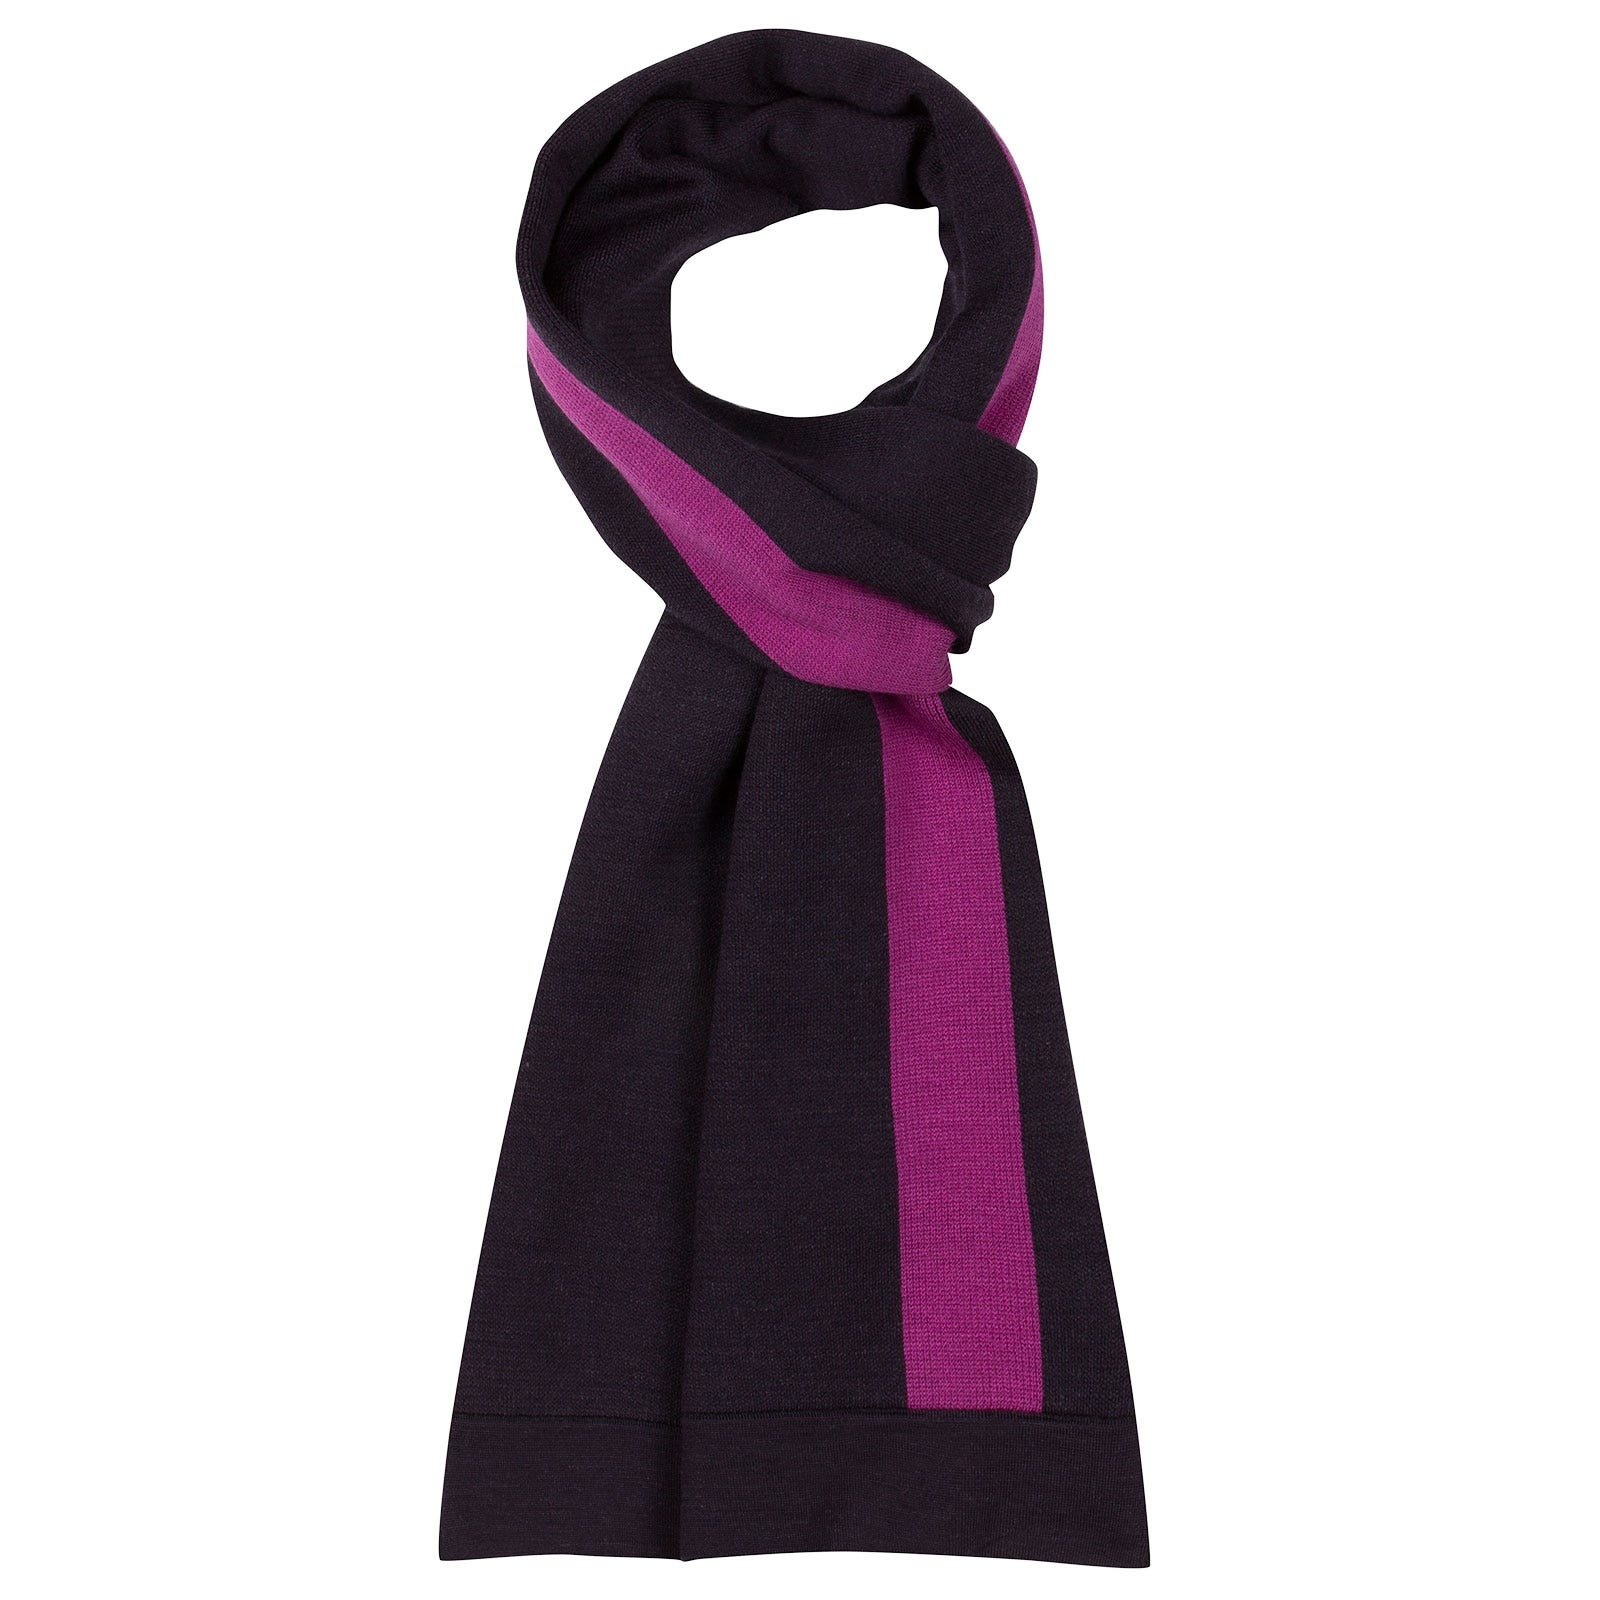 John Smedley Humidity Merino Wool Scarf in Hepburn Smoke-ONE